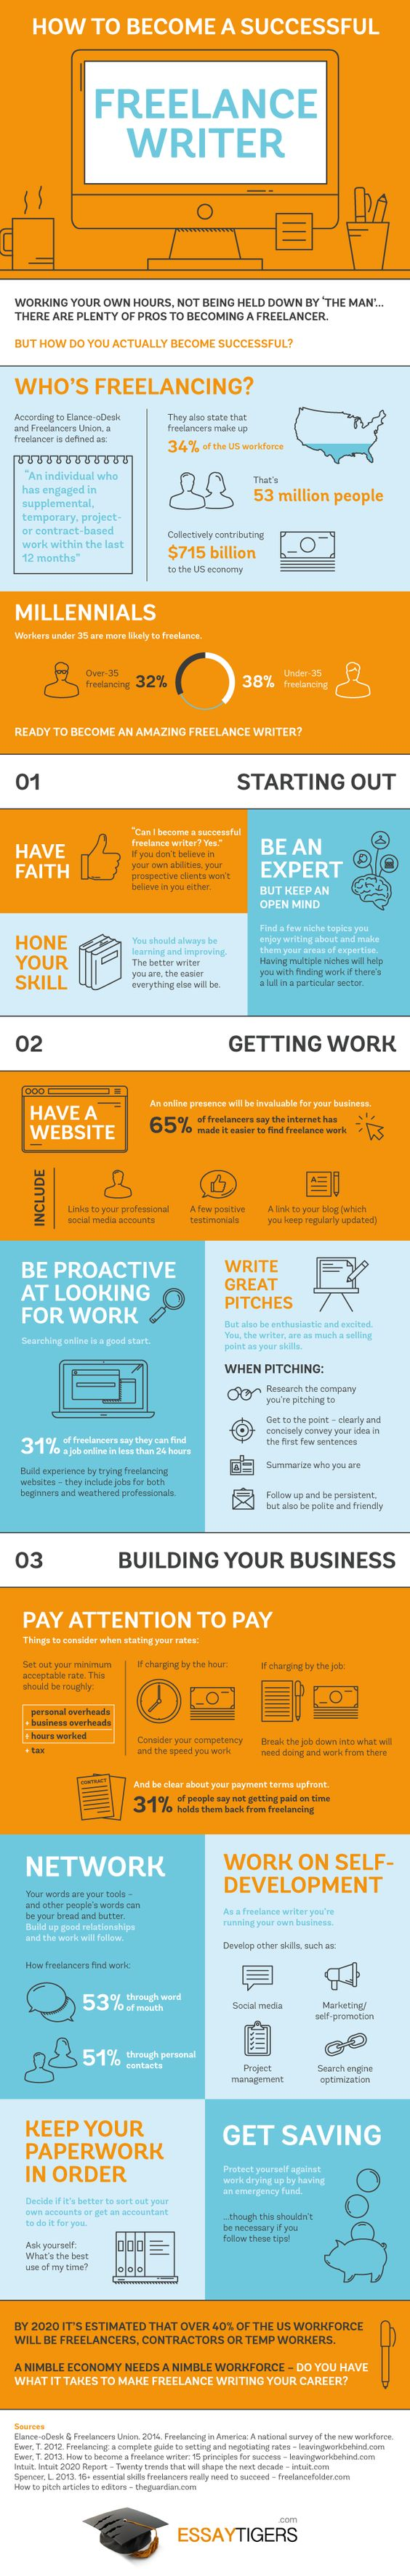 Make Money Online: How To Become A Successful #Freelance Writer - #infographic